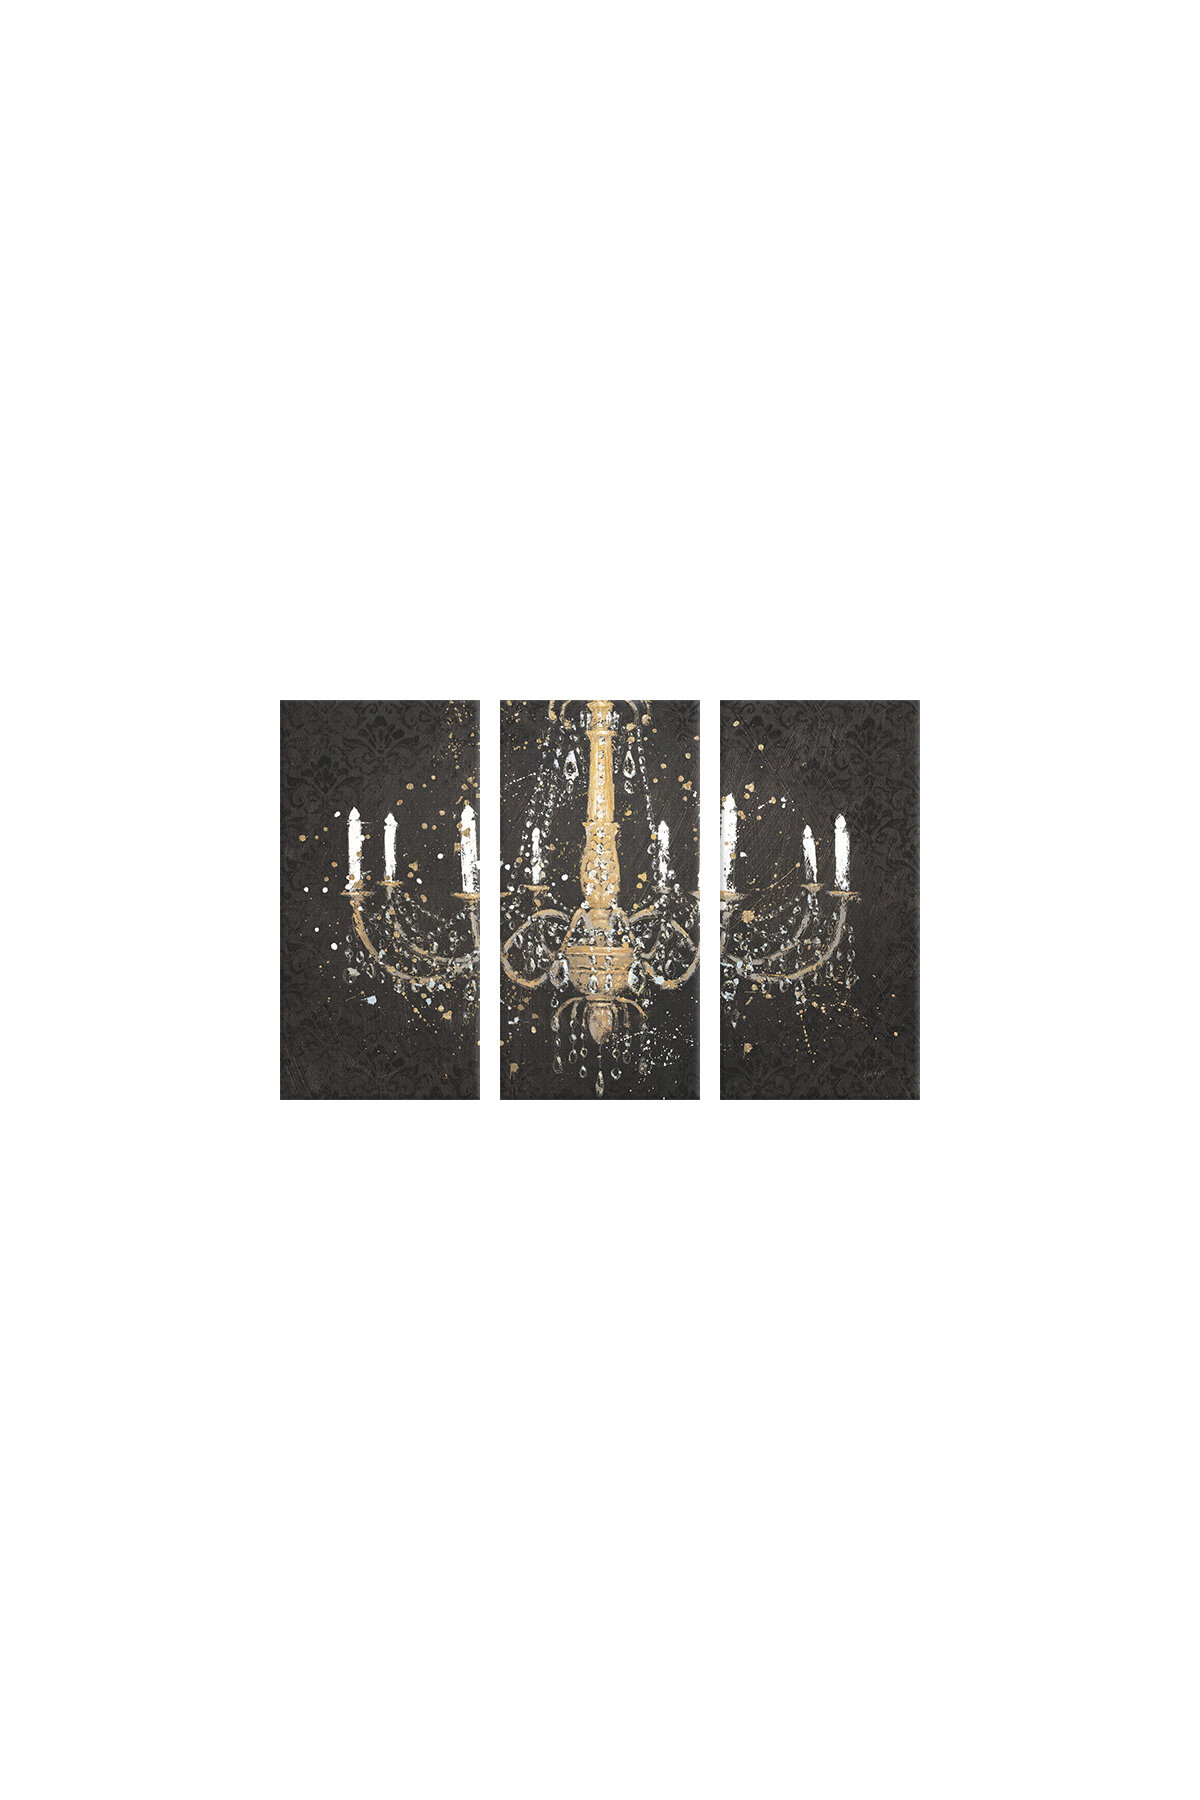 House of Hampton Grand Chandelier I Graphic Art Print Multi Piece